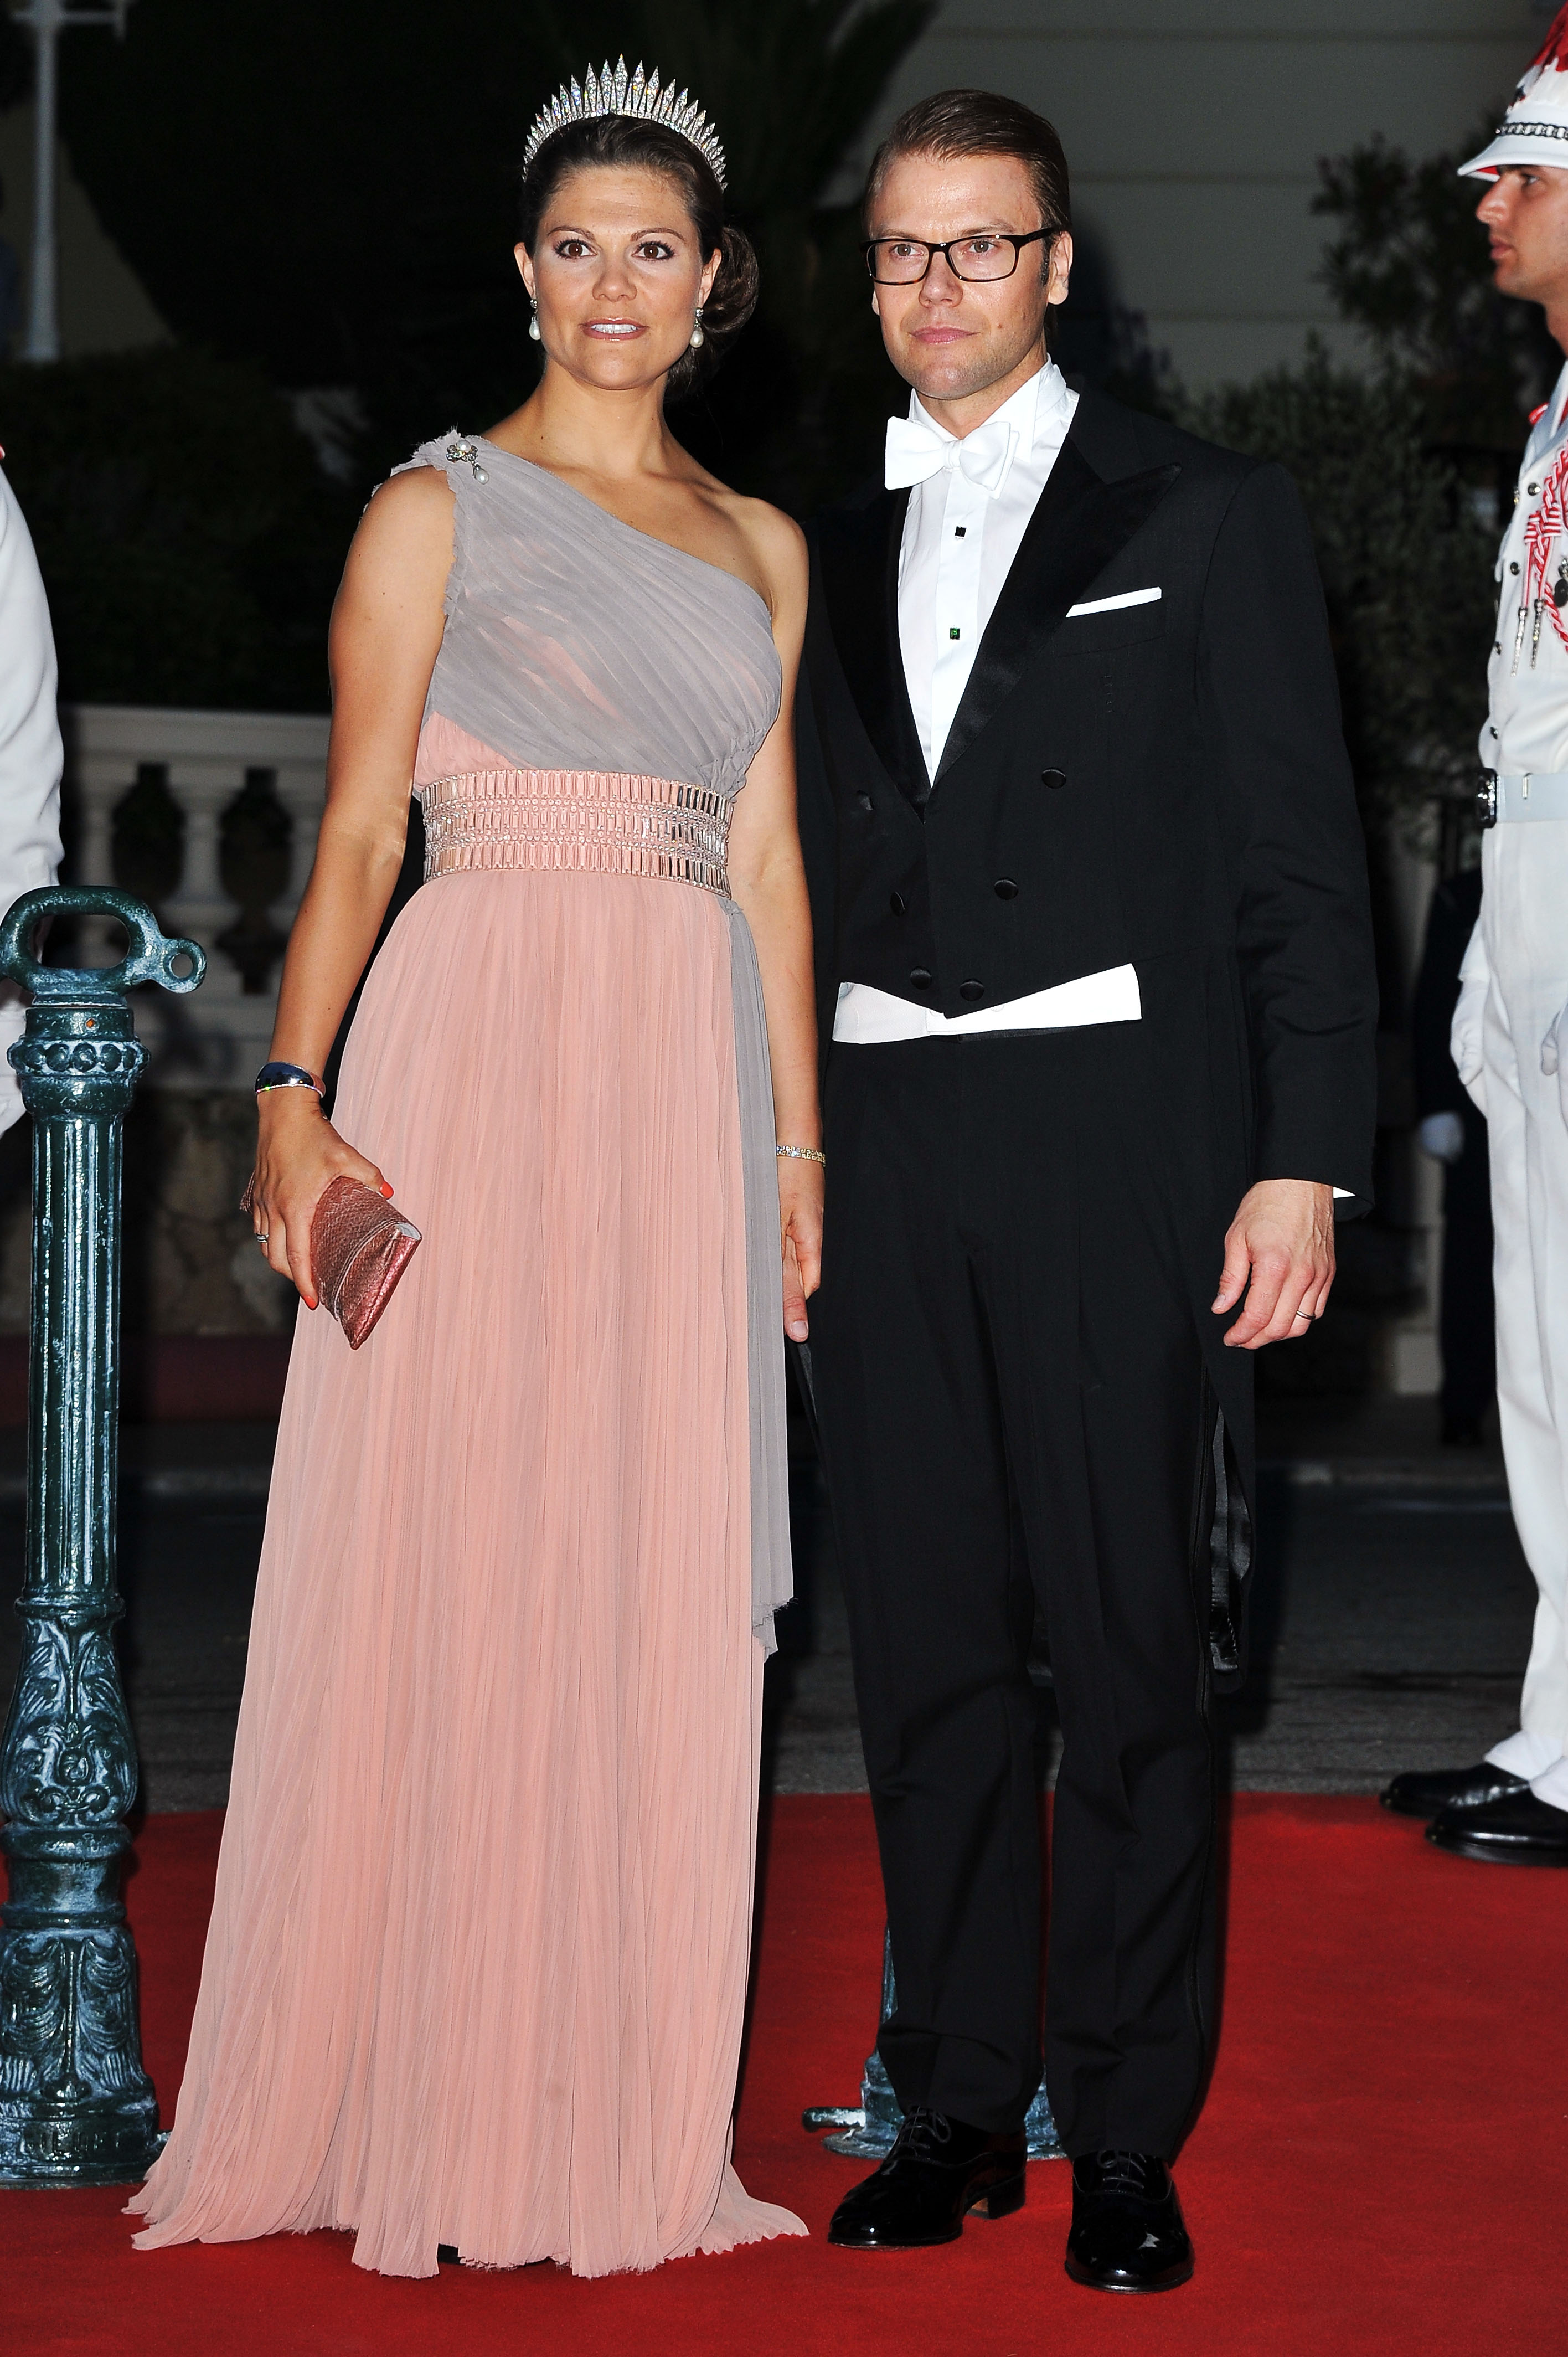 Crown Princess Victoria of Sweden and Crown Prince Haakon of Norway attended a dinner at Opera terraces after the religious wedding ceremony of Prince Albert II of Monaco and Princess Charlene of Monaco.